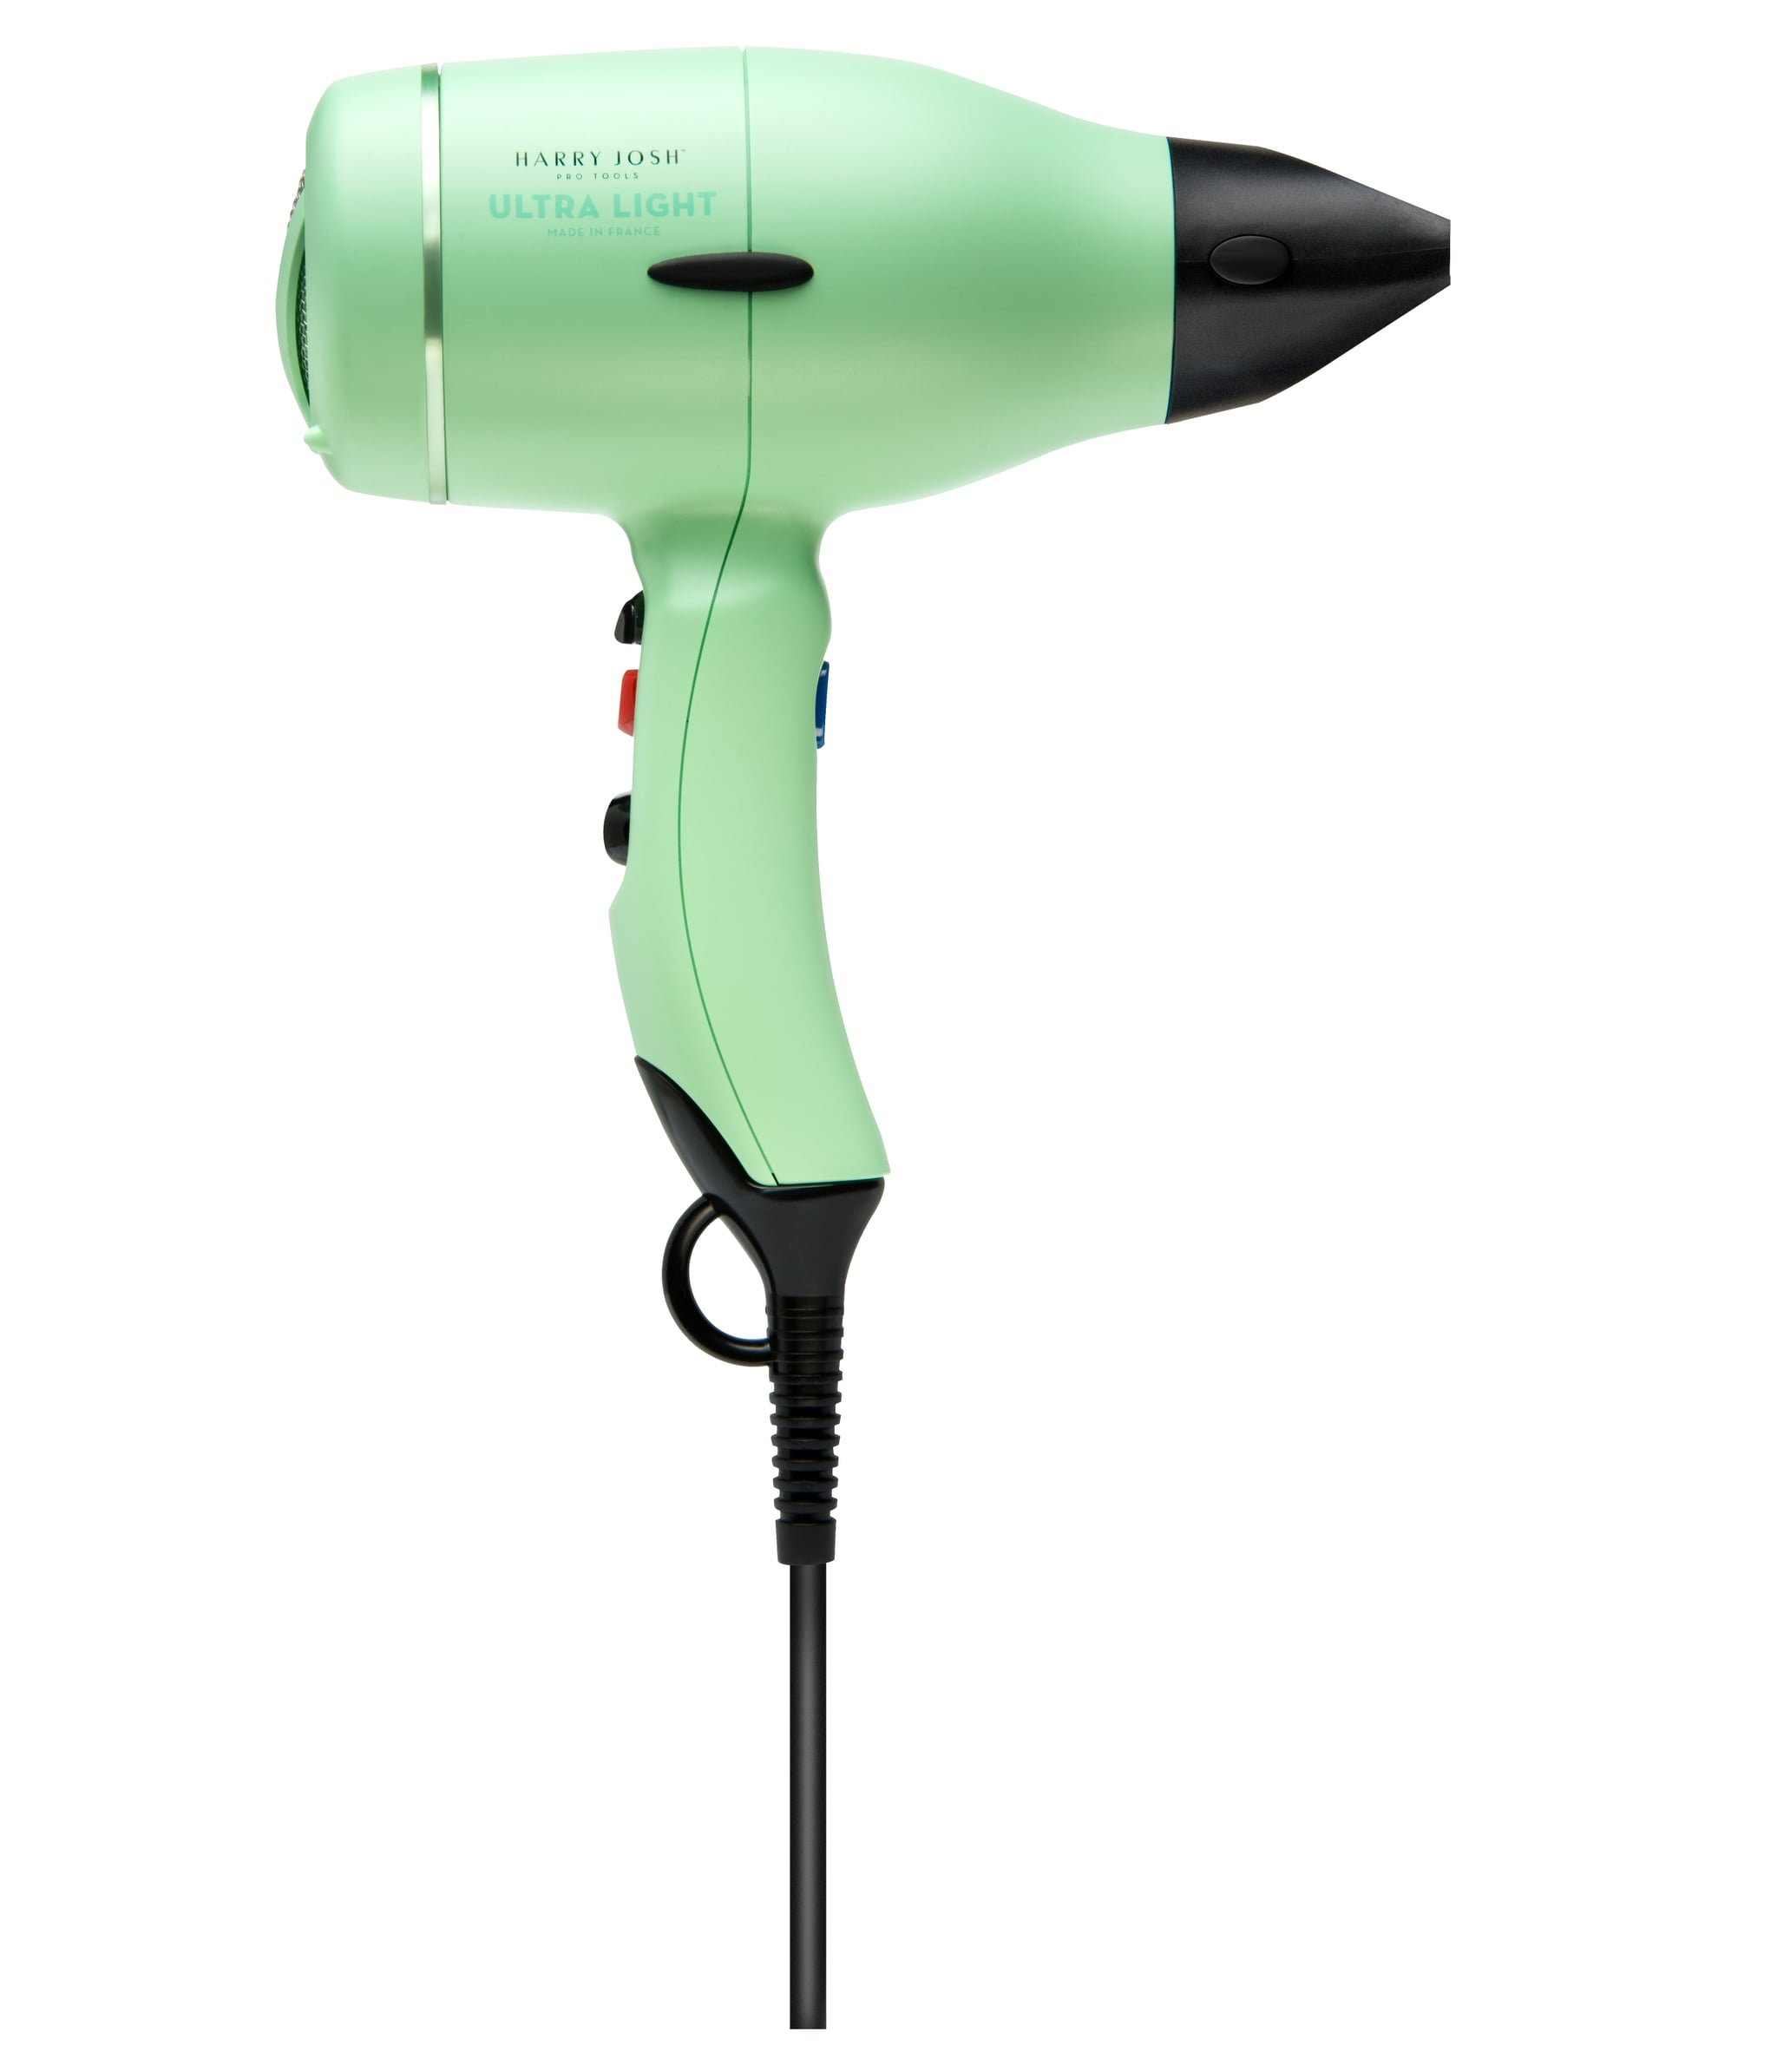 Harry Josh Ultra Light Pro Hair Dryer Review POPSUGAR Beauty